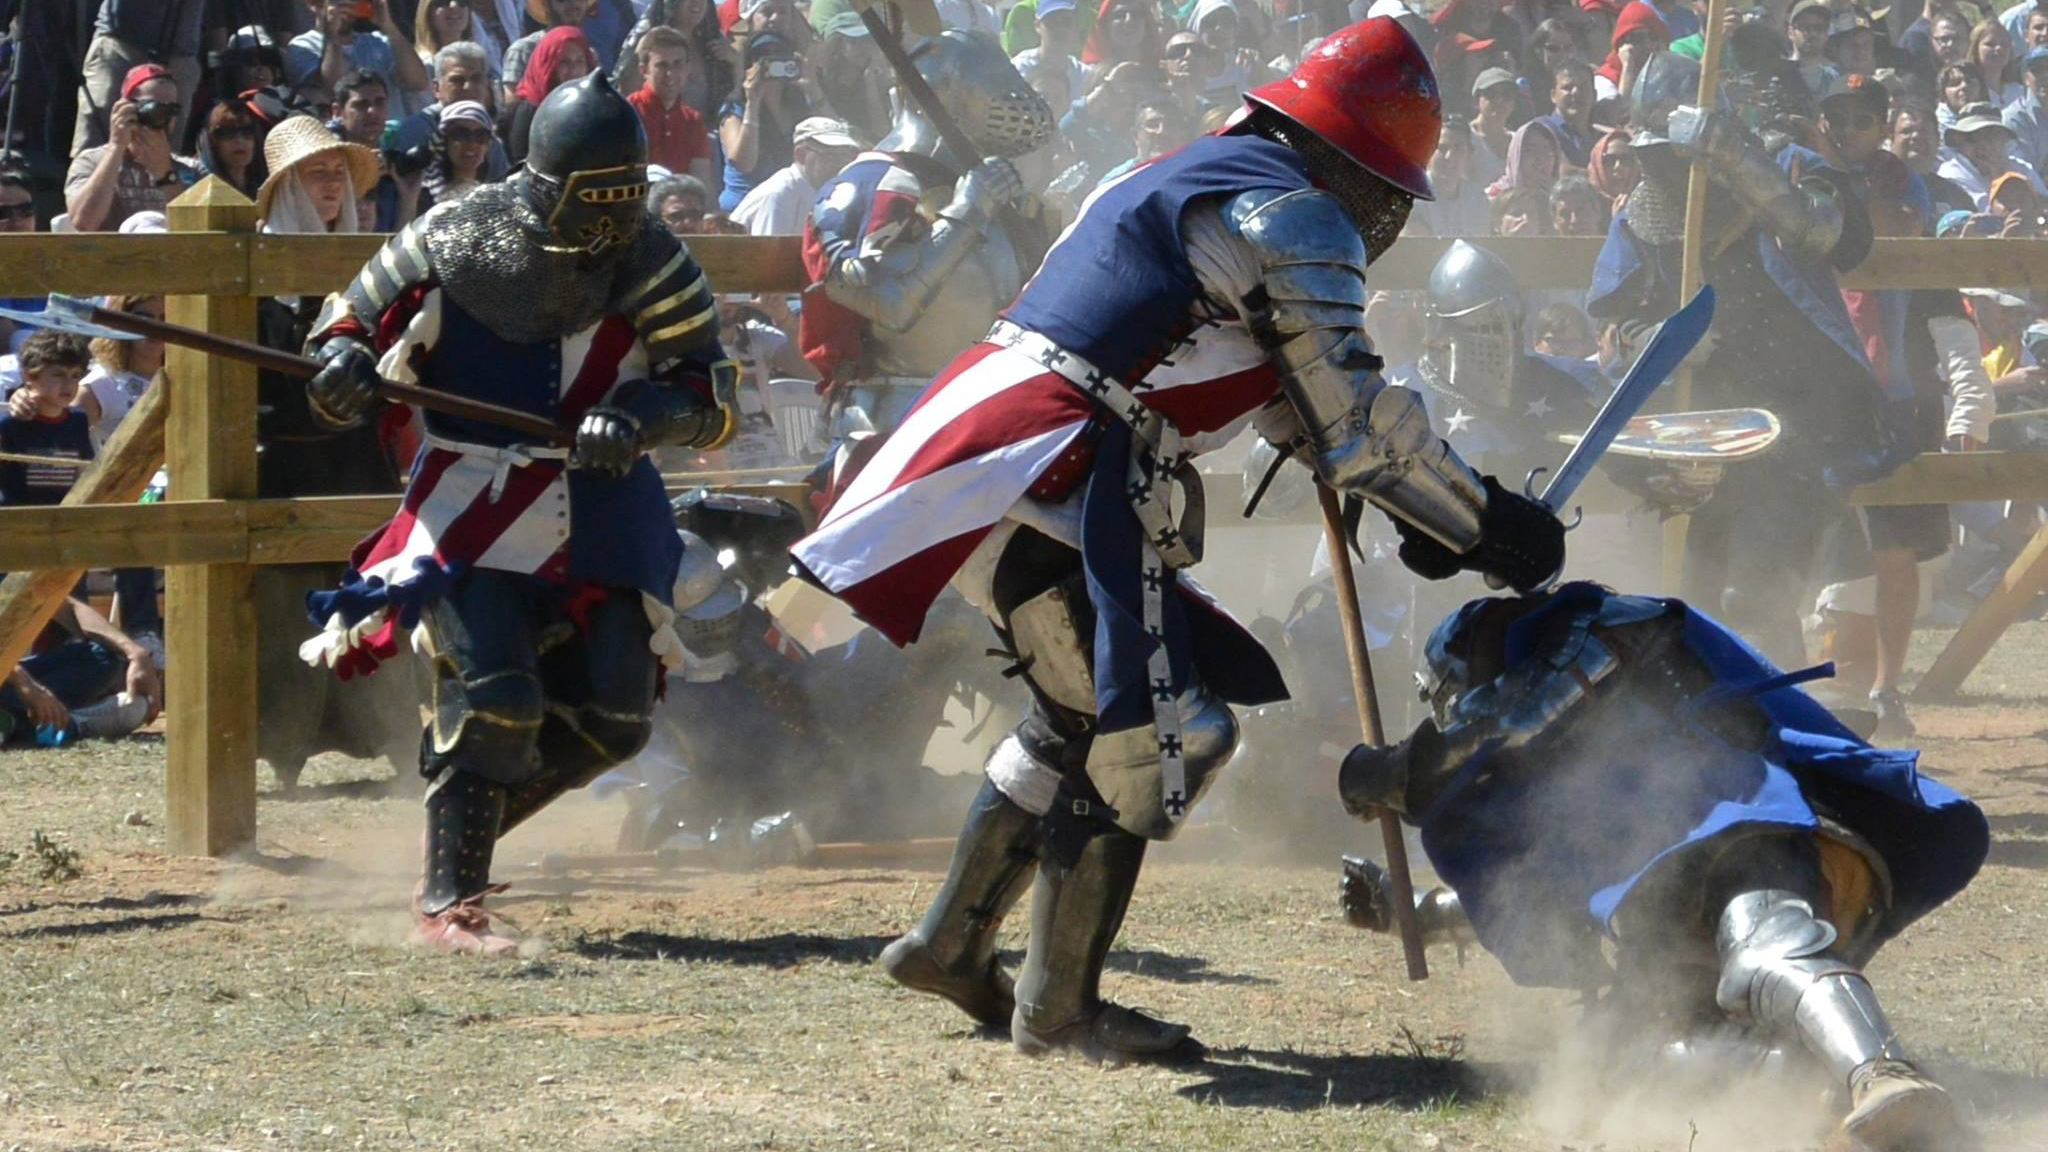 Medieval Times: The Armored Combat League Makes Sport Out of Swords